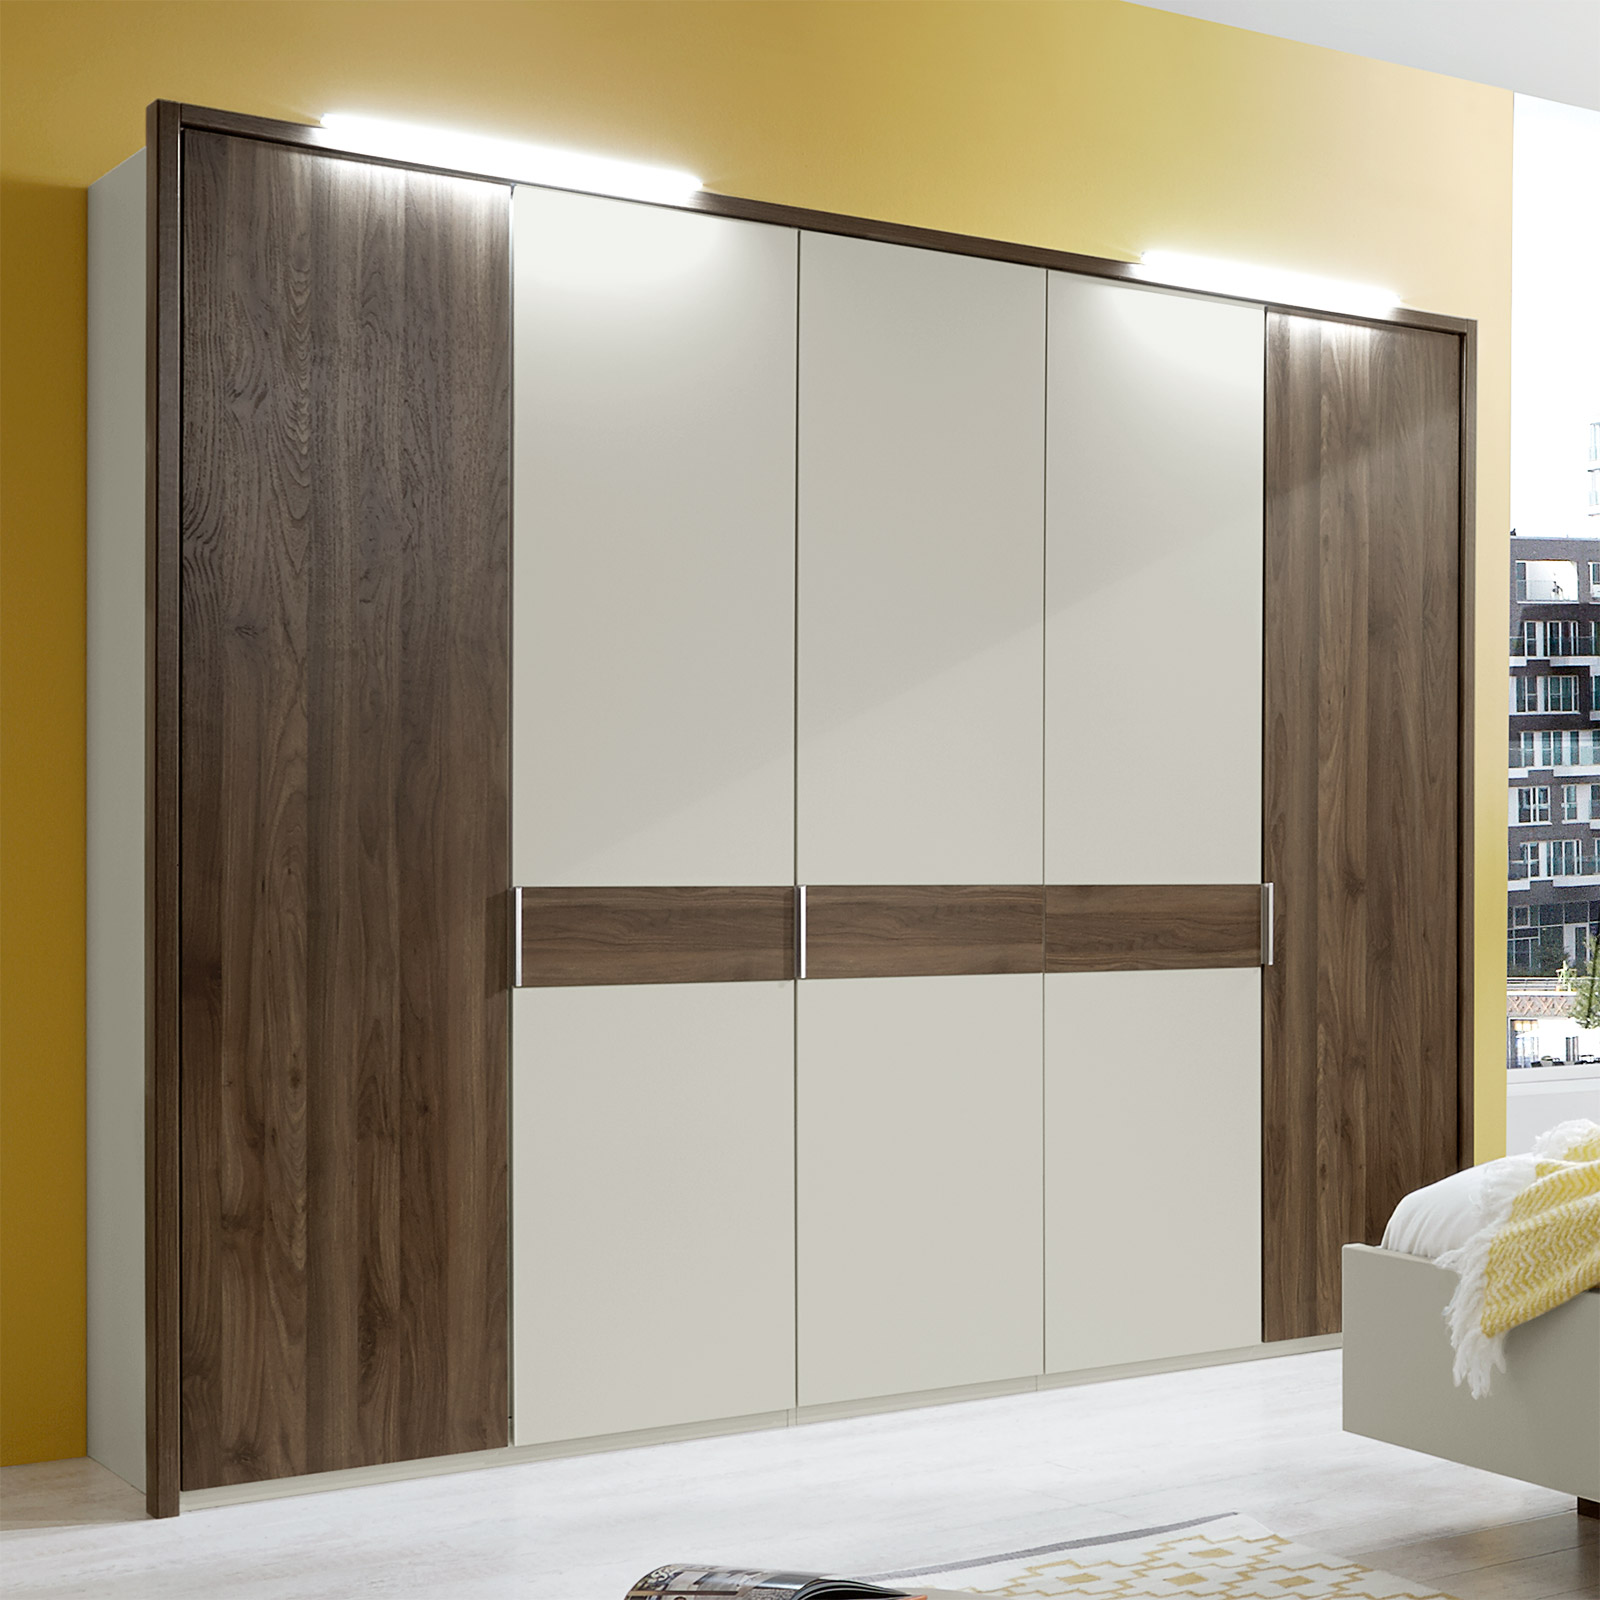 dekor kleiderschrank mit dreht ren und passepartout rahmen. Black Bedroom Furniture Sets. Home Design Ideas